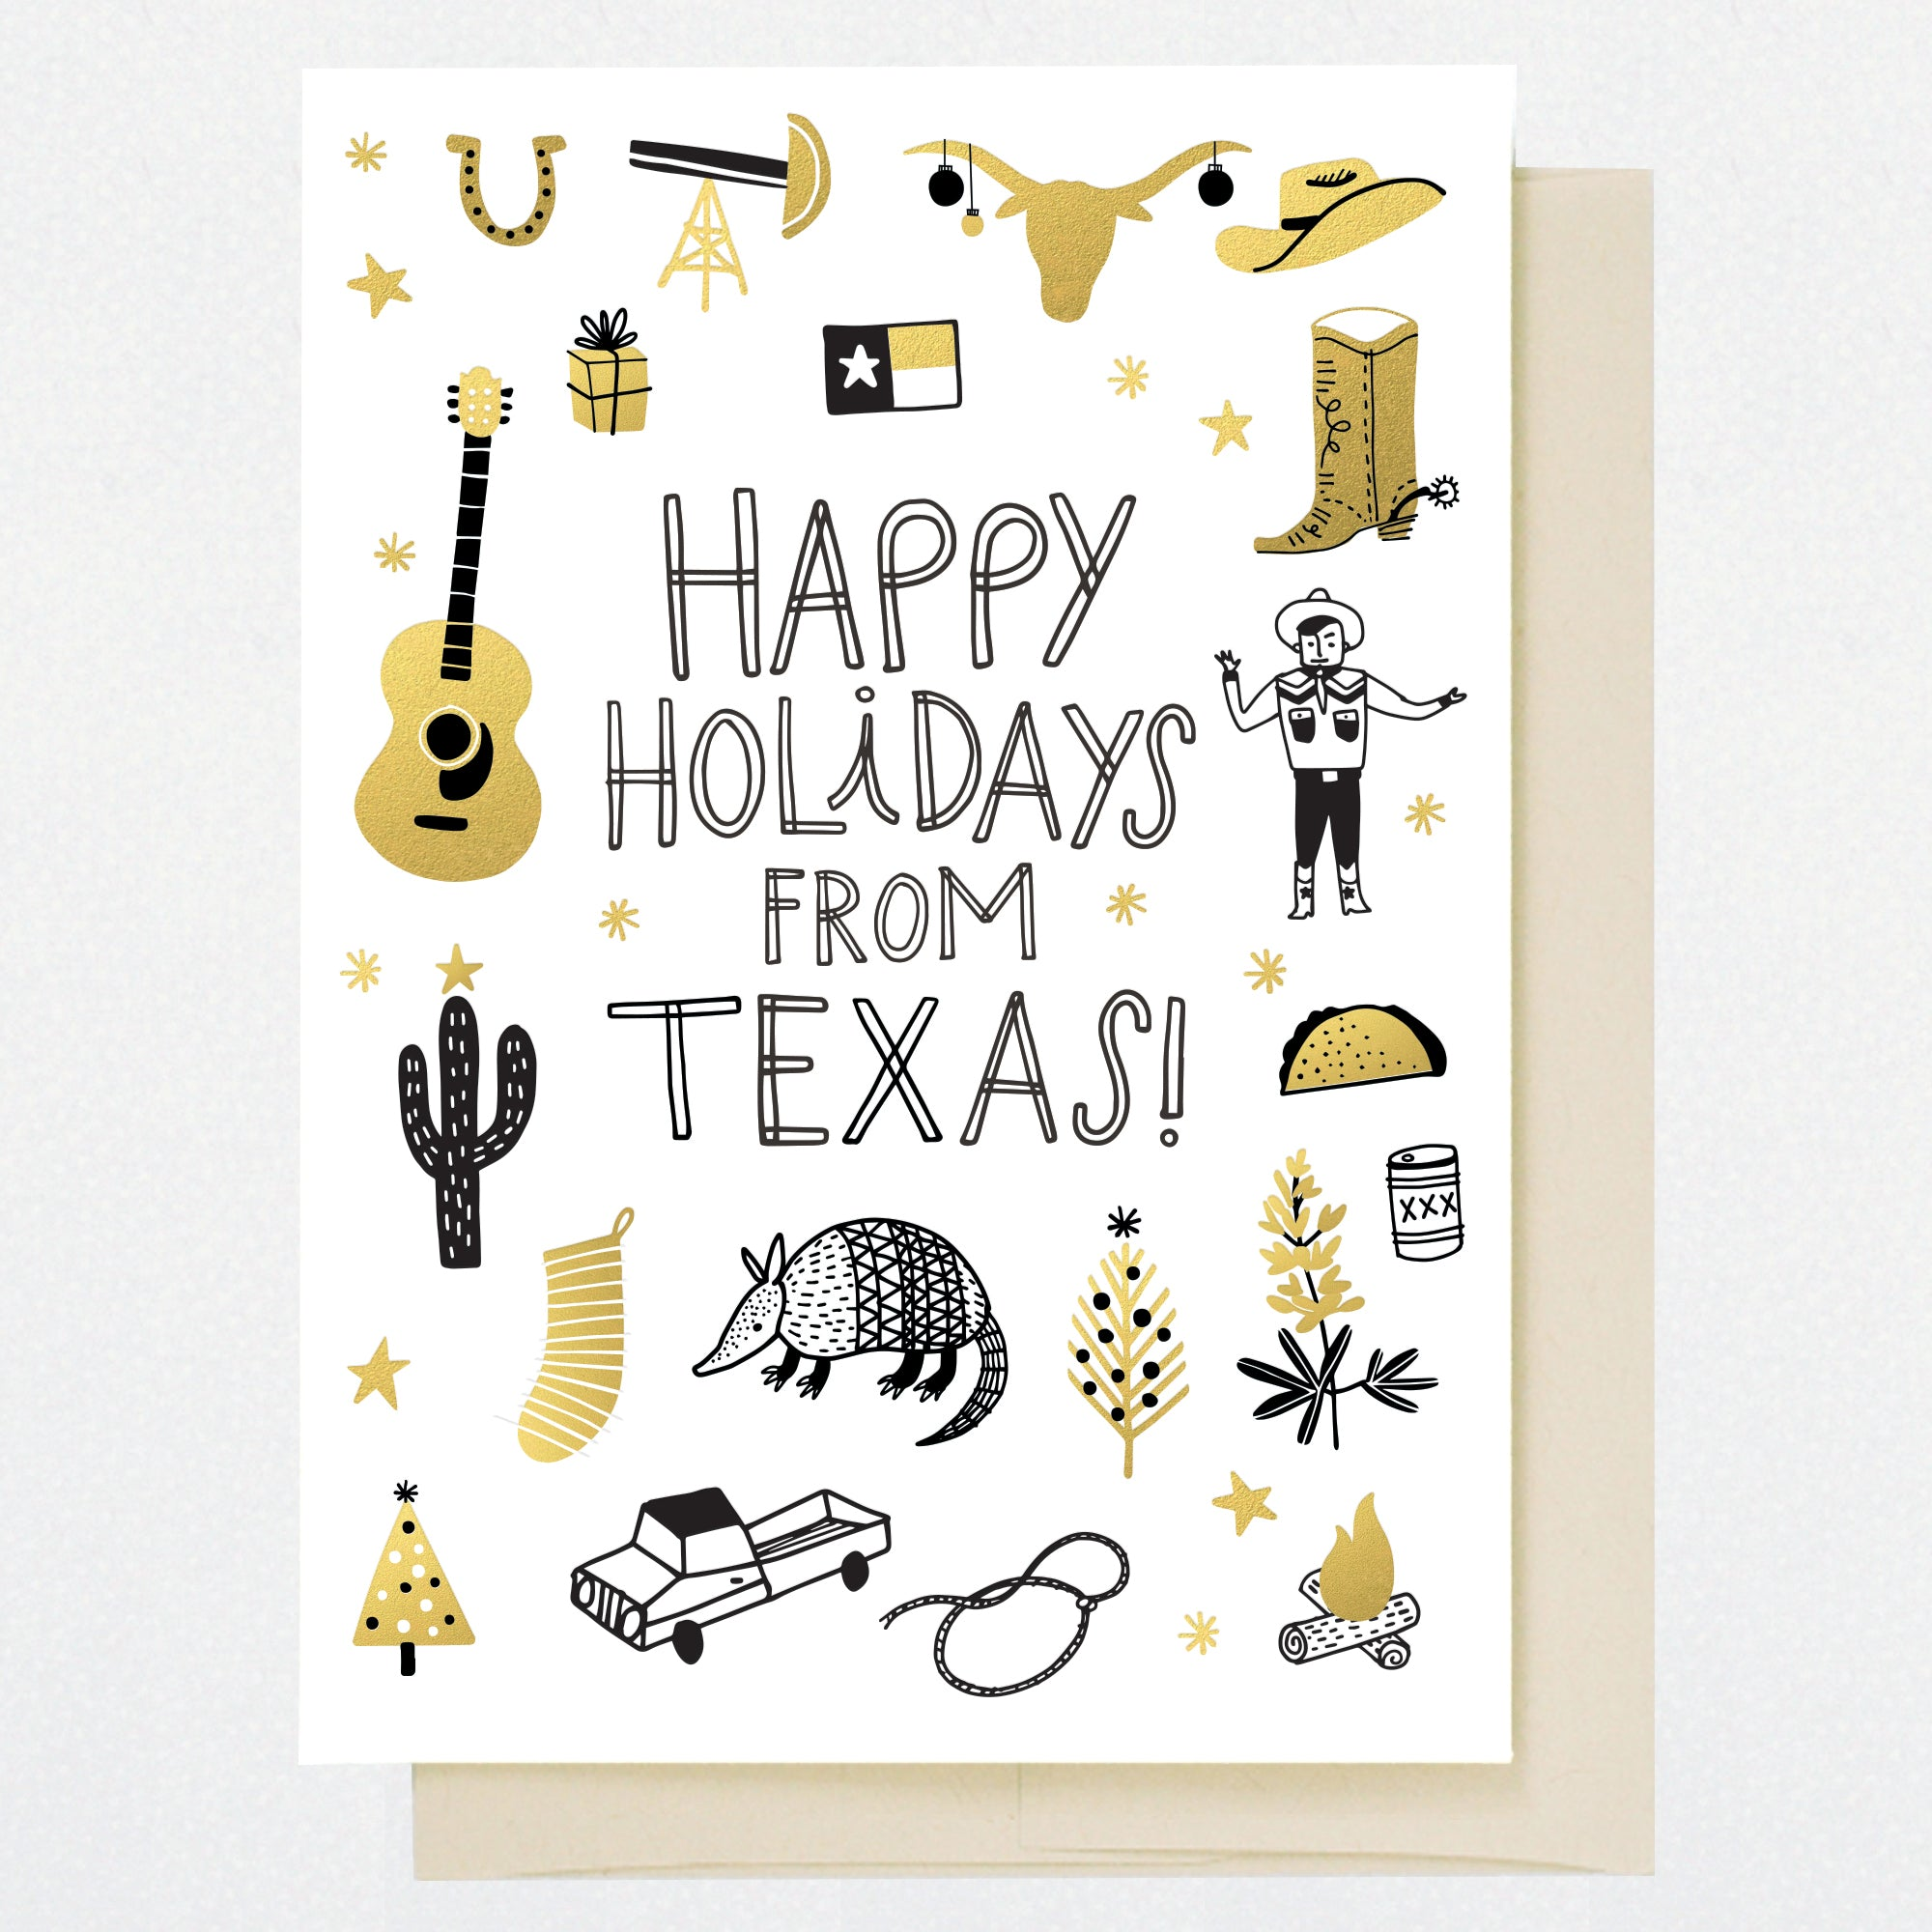 Texas holiday greeting card hellolucky m4hsunfo